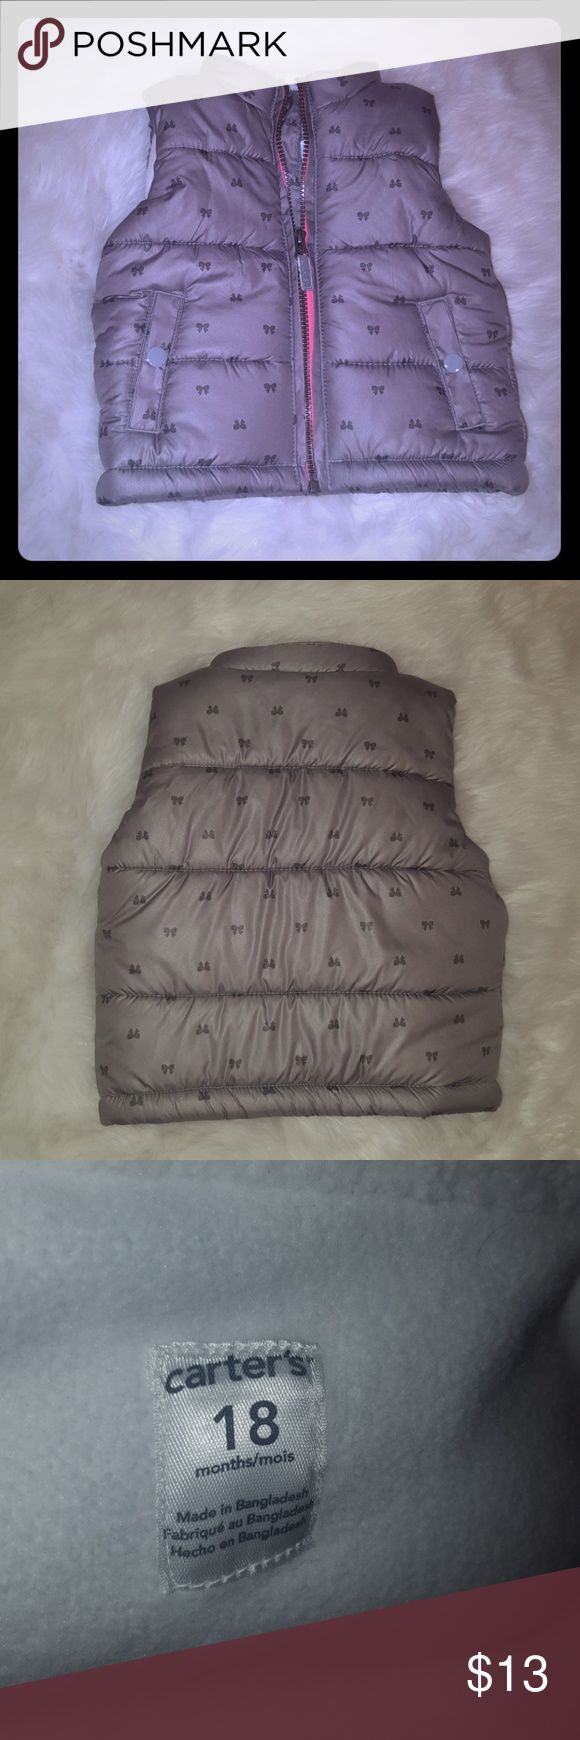 Carter's baby girl vest 18mo Carter's gray best w/bows pattern, white fleece inside w/pink accent zipper. In excellent condition, no tears, no stains, size 18months. Carter's Jackets & Coats Vests